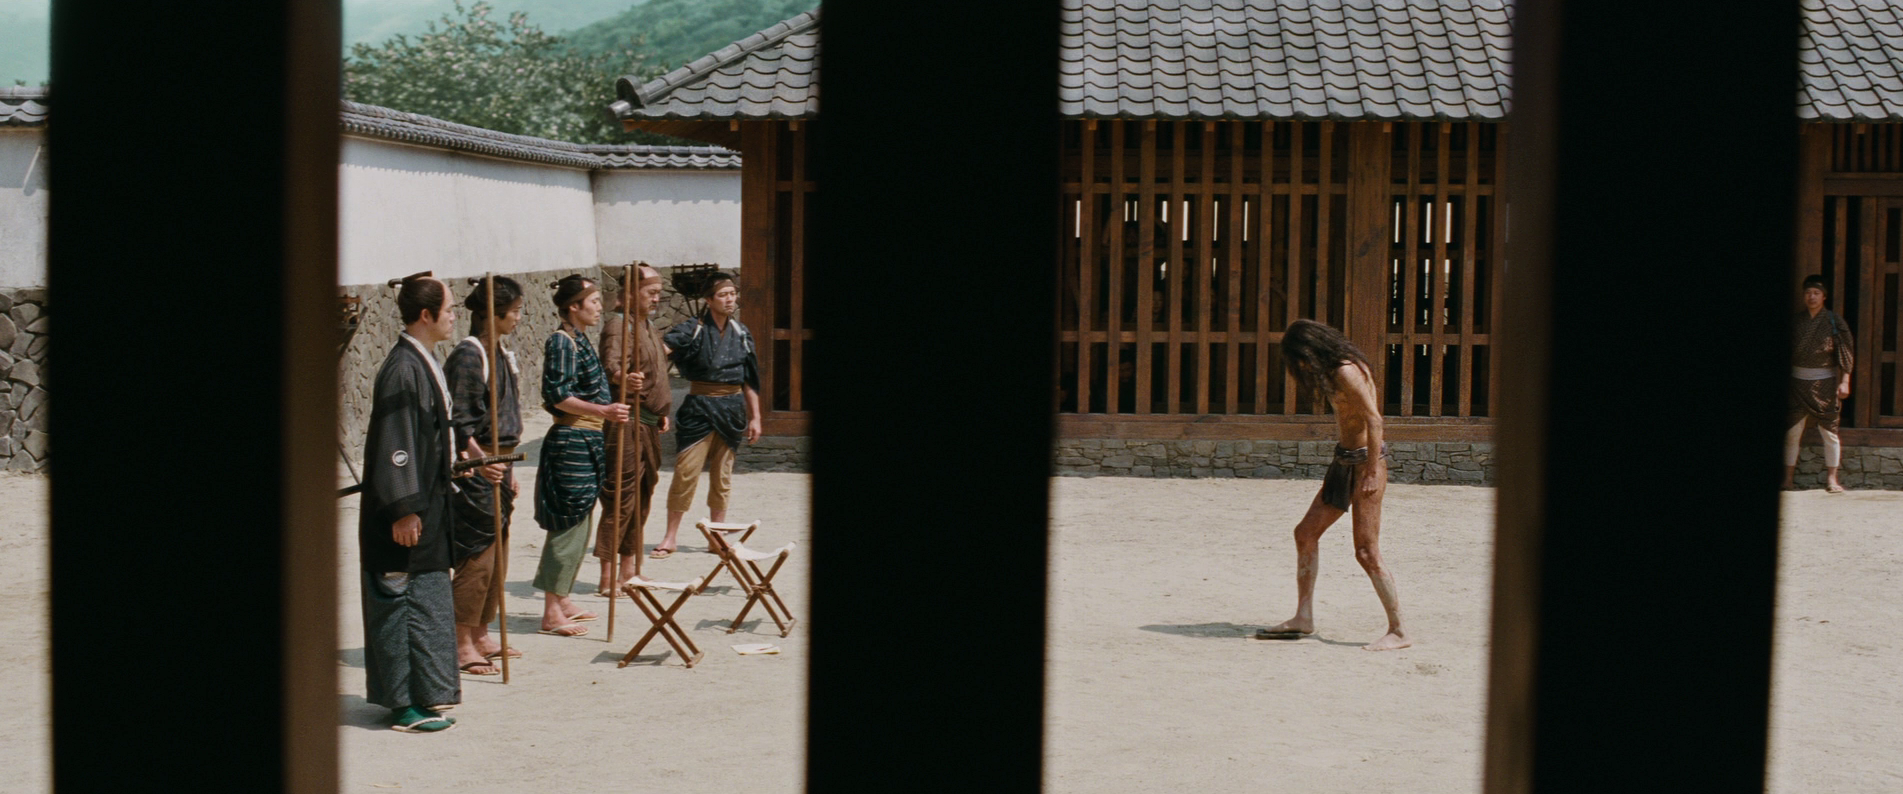 A  fumie-e  formality, Scorsese's framing evoking modern day cell-phone videos which stress the vertical composition.